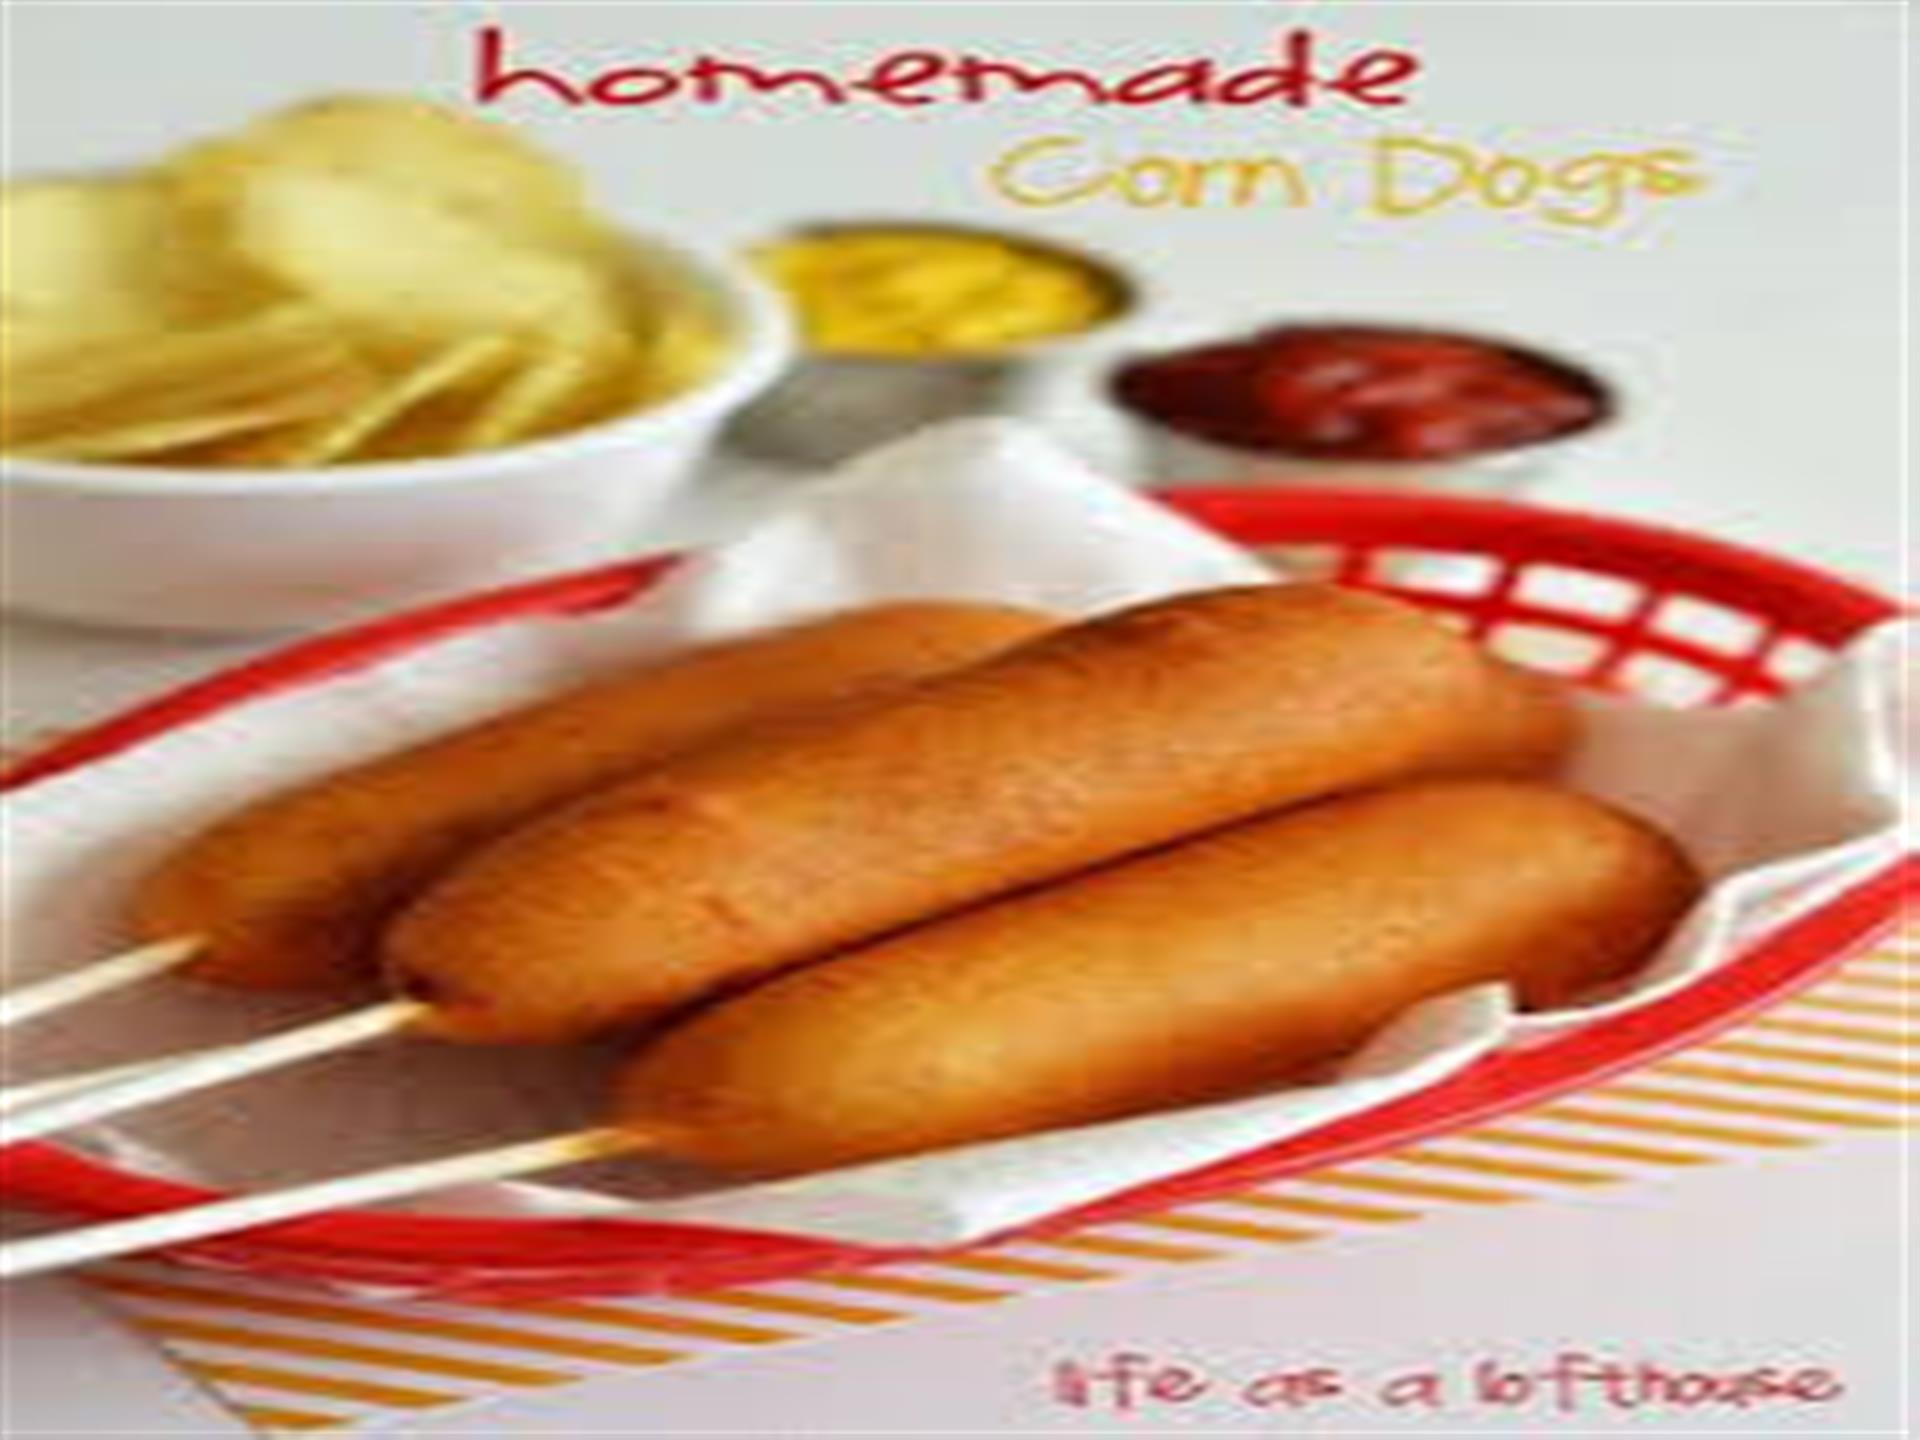 3 homemade corn dogs in a basket with mustard and ketchup dipping sauces.